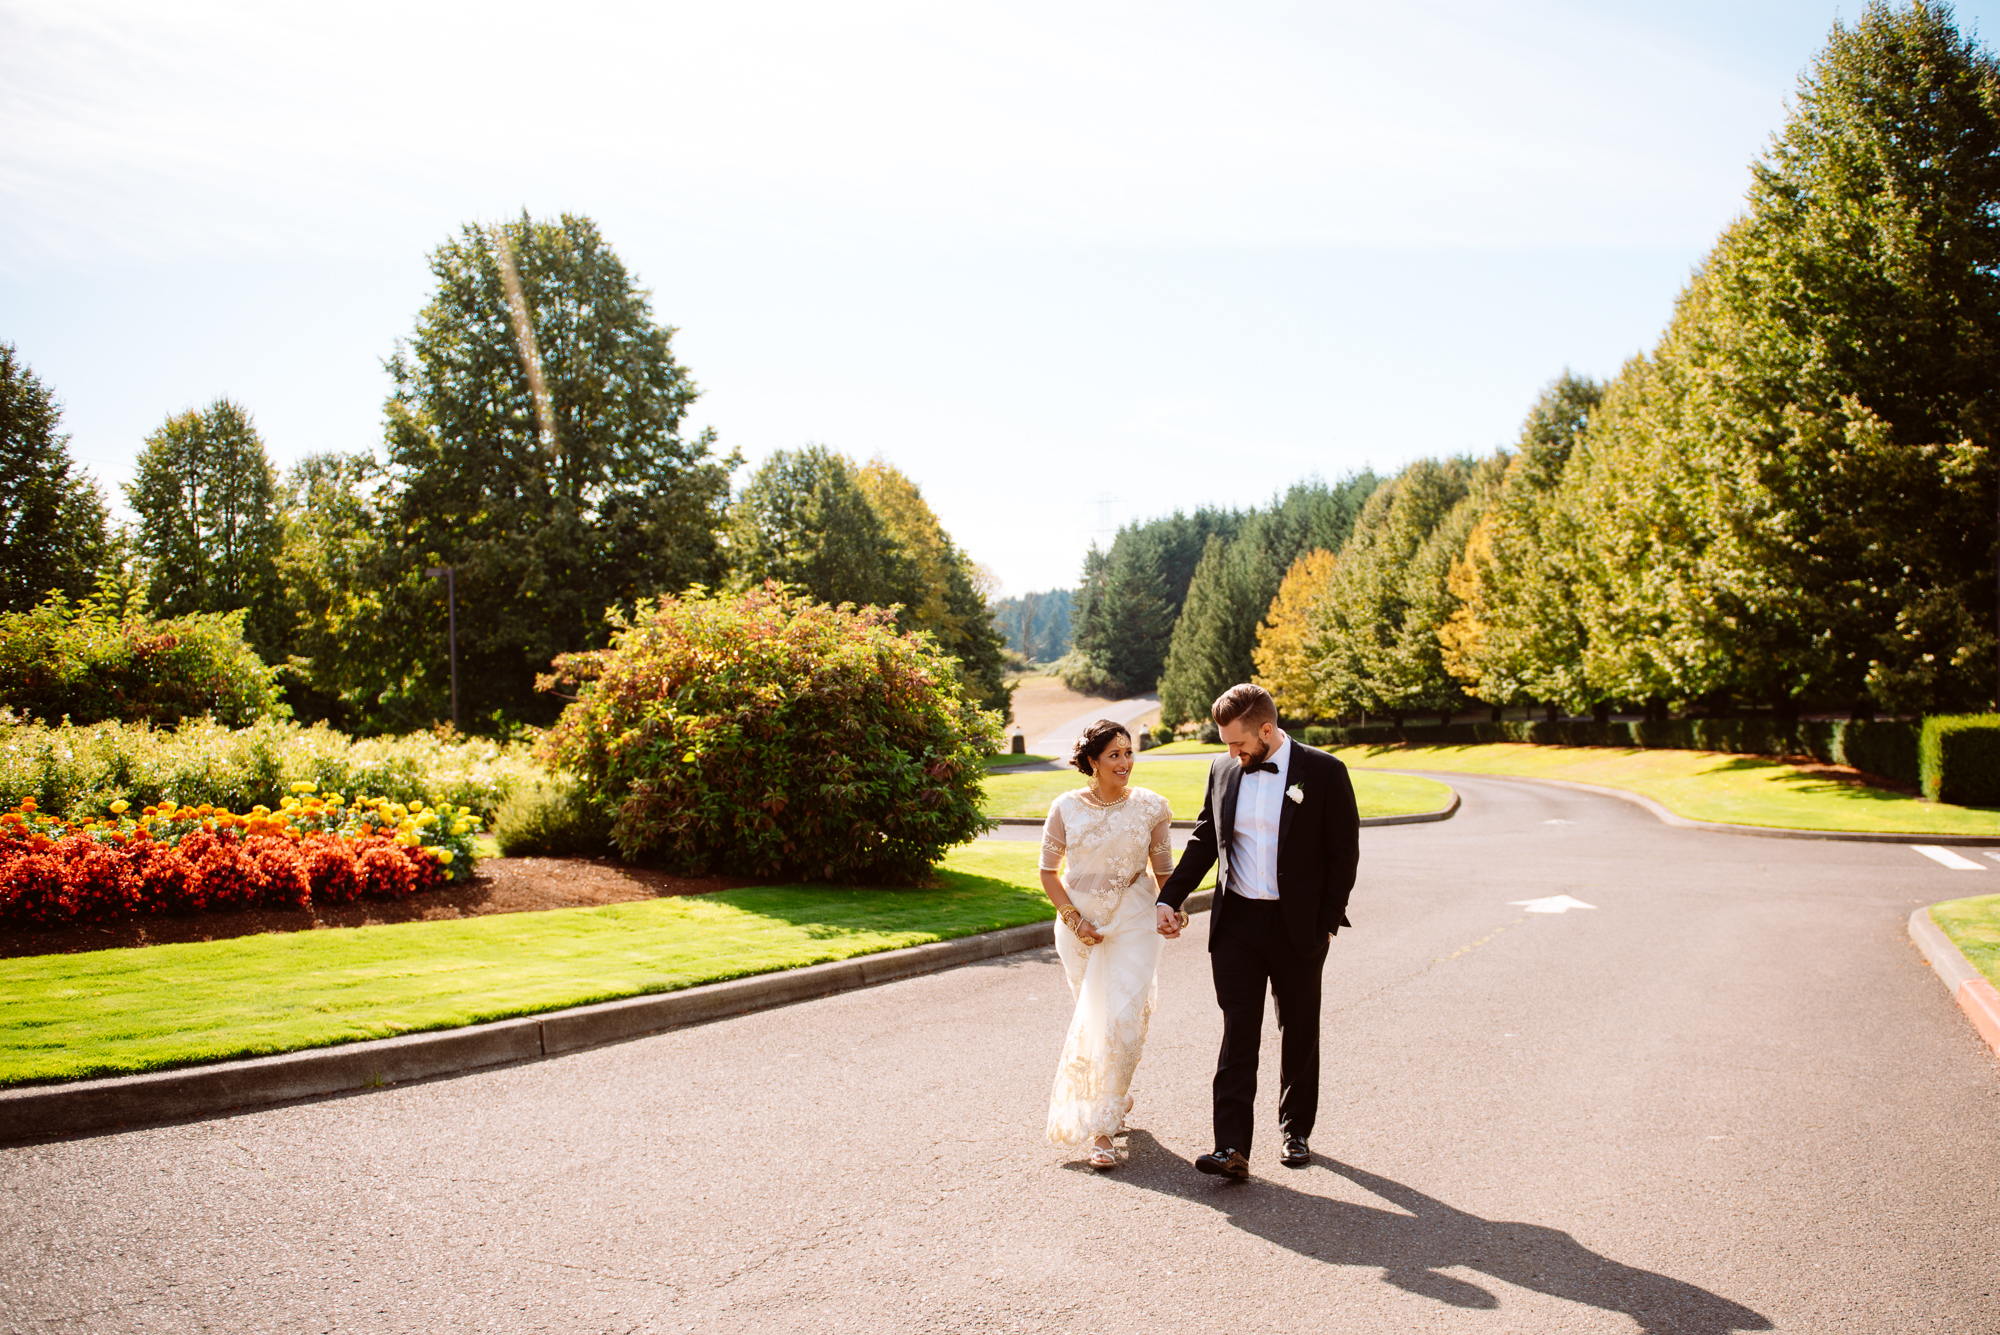 Bridalbliss.com | Portland Wedding | Oregon Event Planning and Design | Jessica Hill Photography